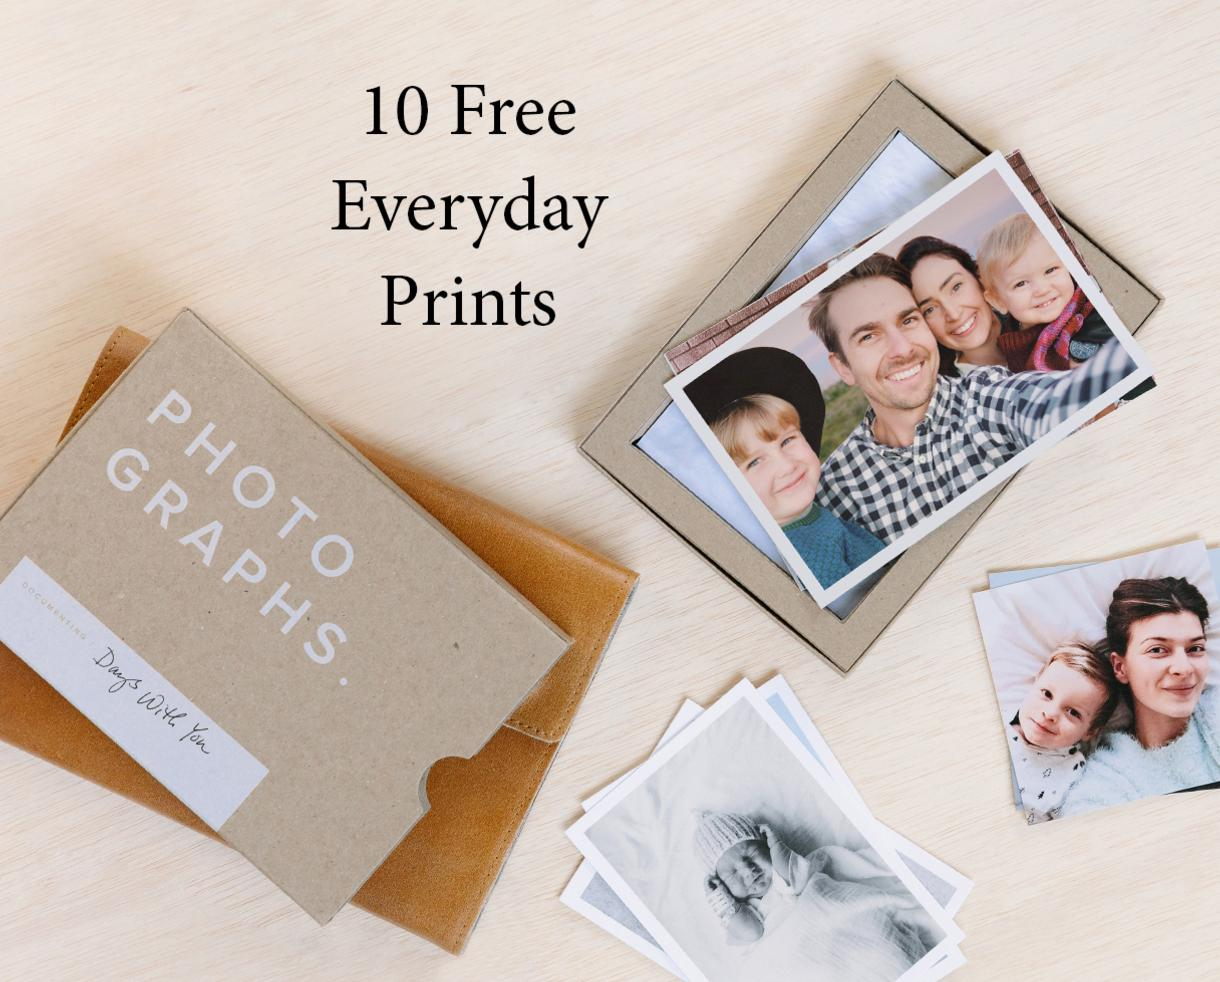 10 Free Everyday Prints at Artifact Uprising - Seven Unique Sizes Printed on Textured, Matte Paper